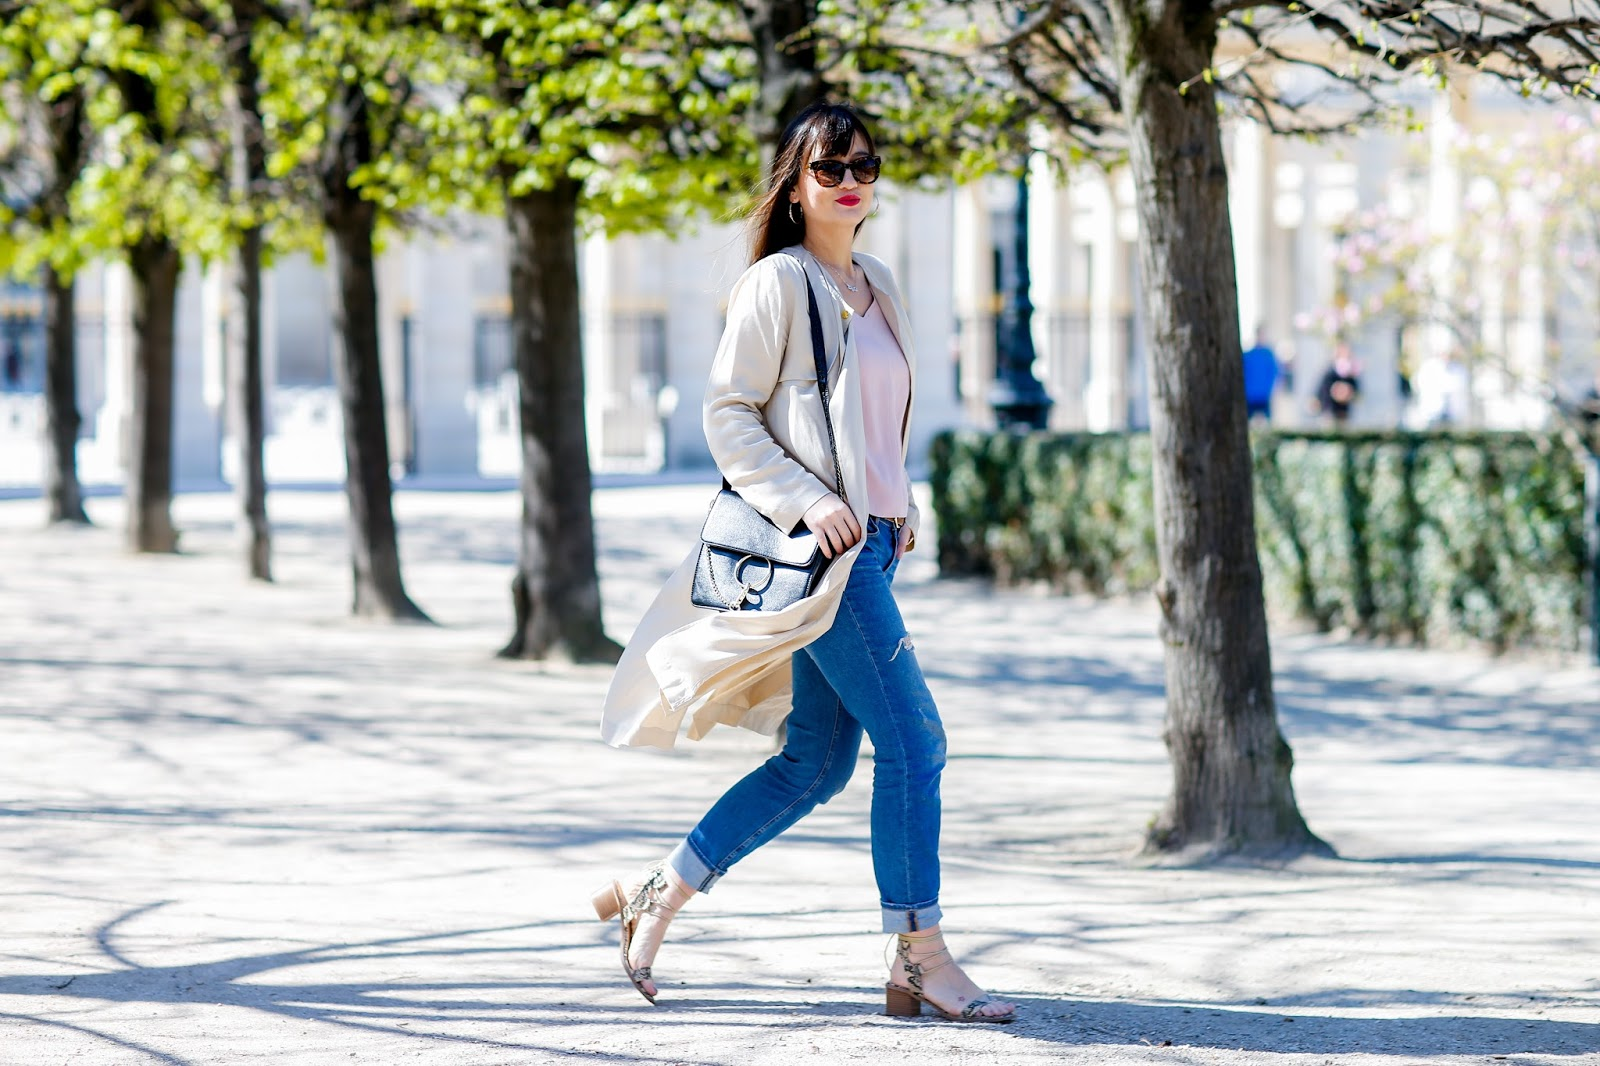 Paris, blogger, style, look, chic wish, parisian style, meet me in paree, fashion